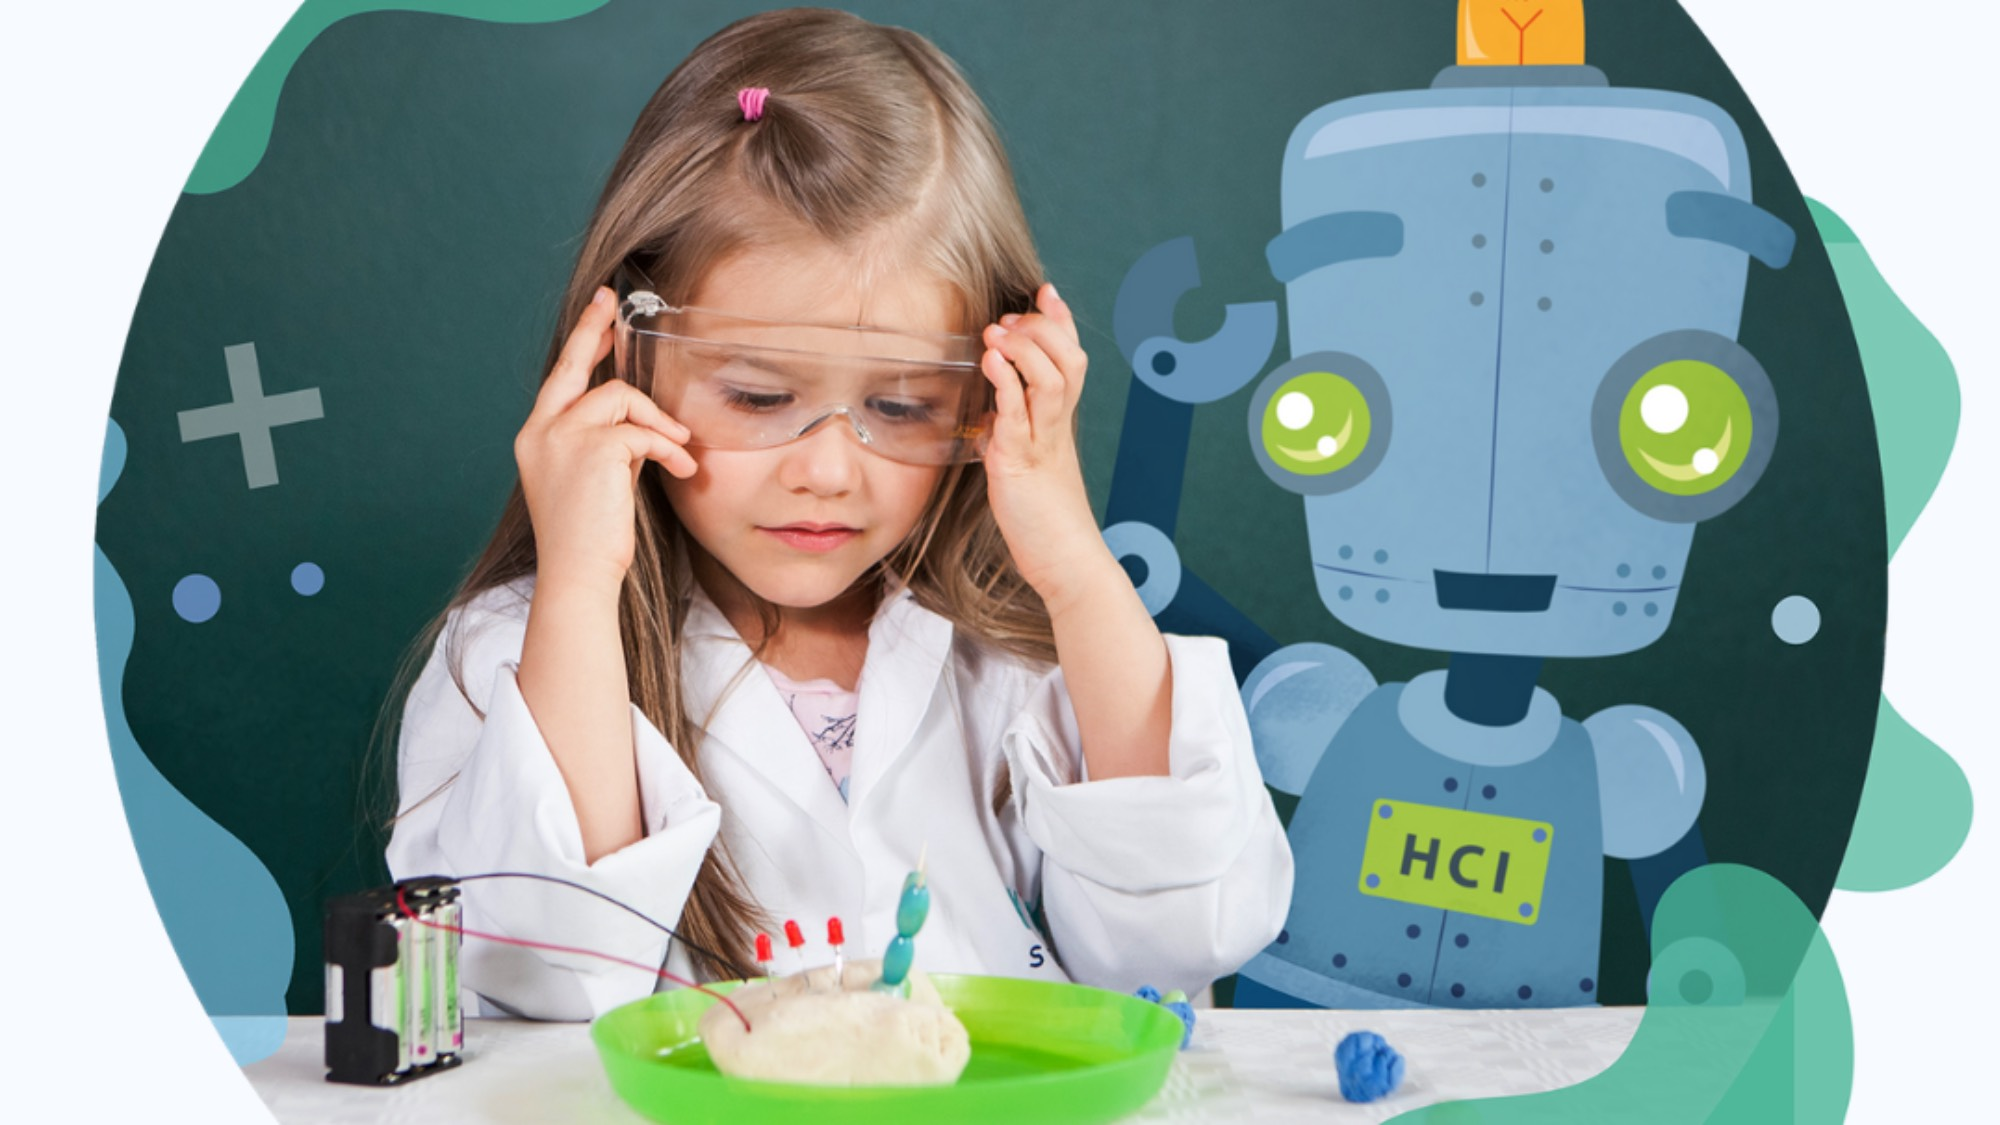 A girl in a science coat carrying out an experiment